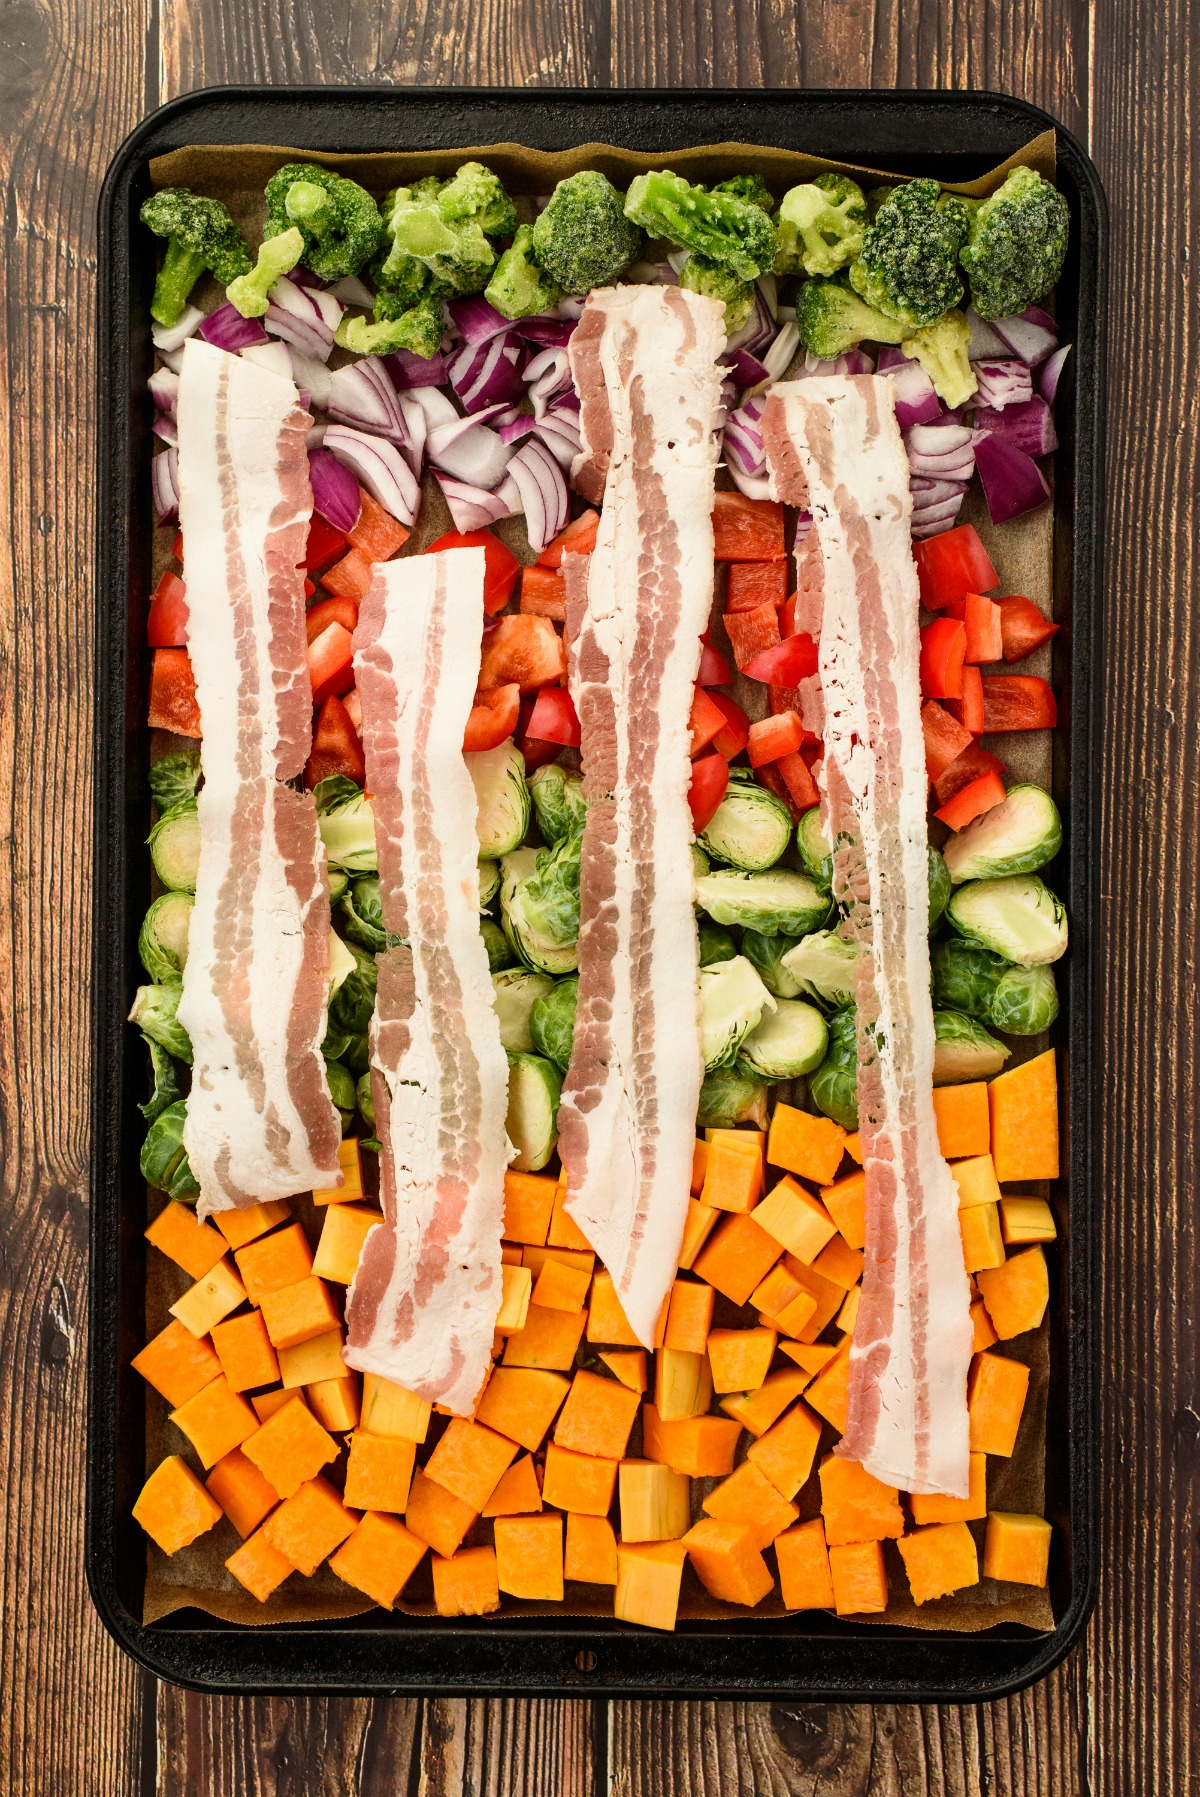 Vegetables on a sheet pan with slices of bacon on top.